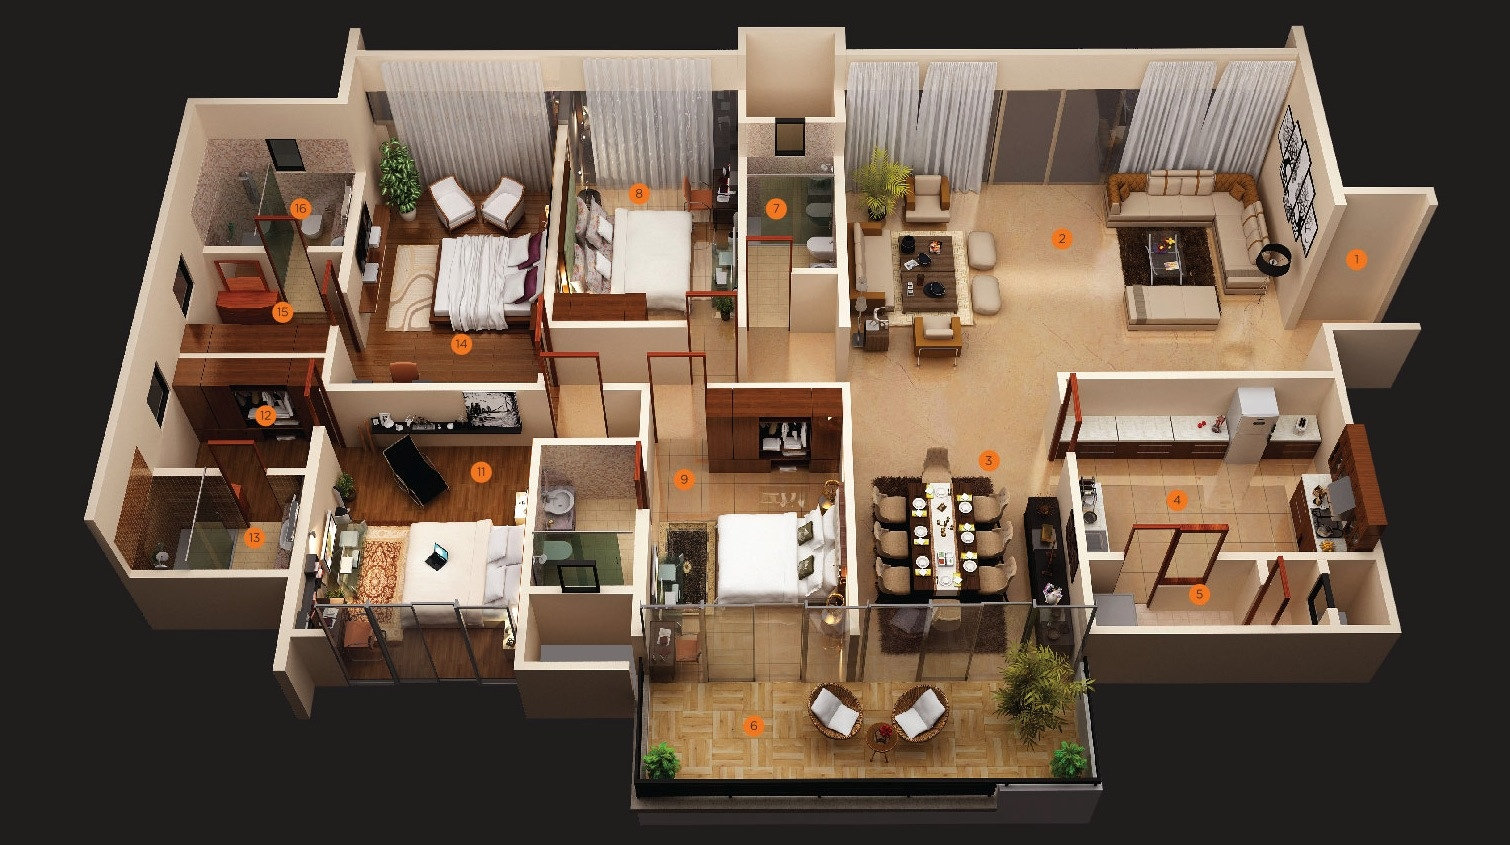 50 four 4 bedroom apartment house plans architecture for 4 bedroom house plans kerala style architect